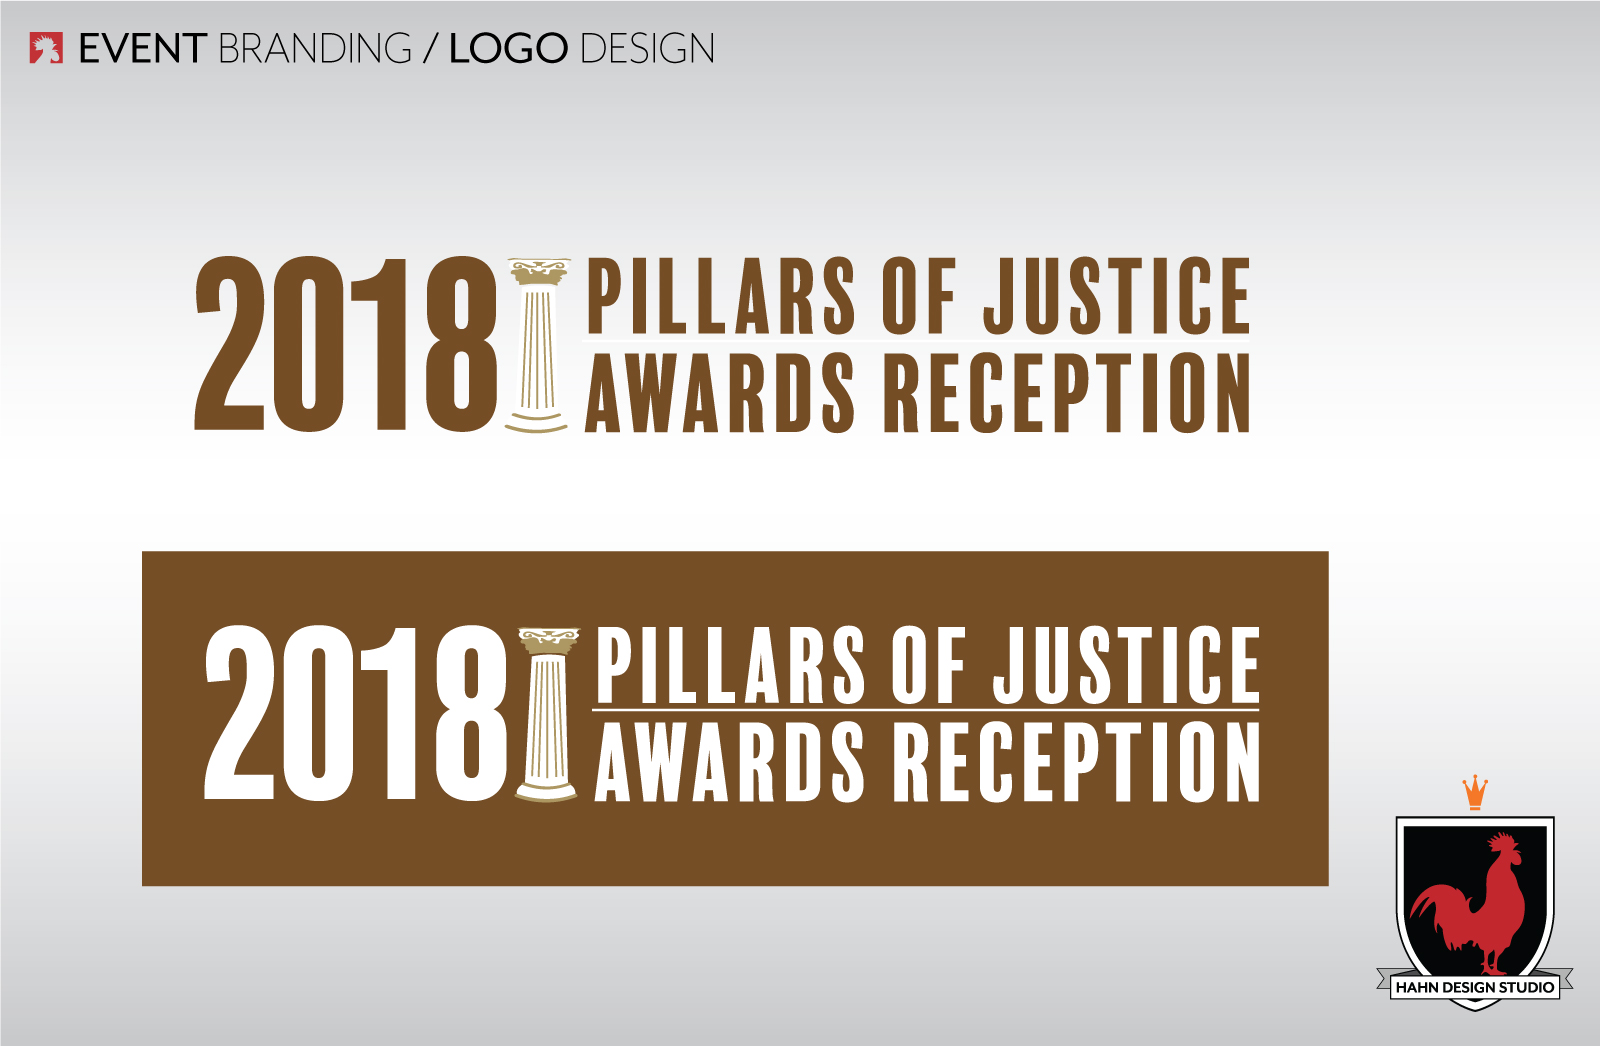 Event Branding Logo Design for 2018 Pillars of Justice Awards Reception for Chicago Appleseed Fund for Justice